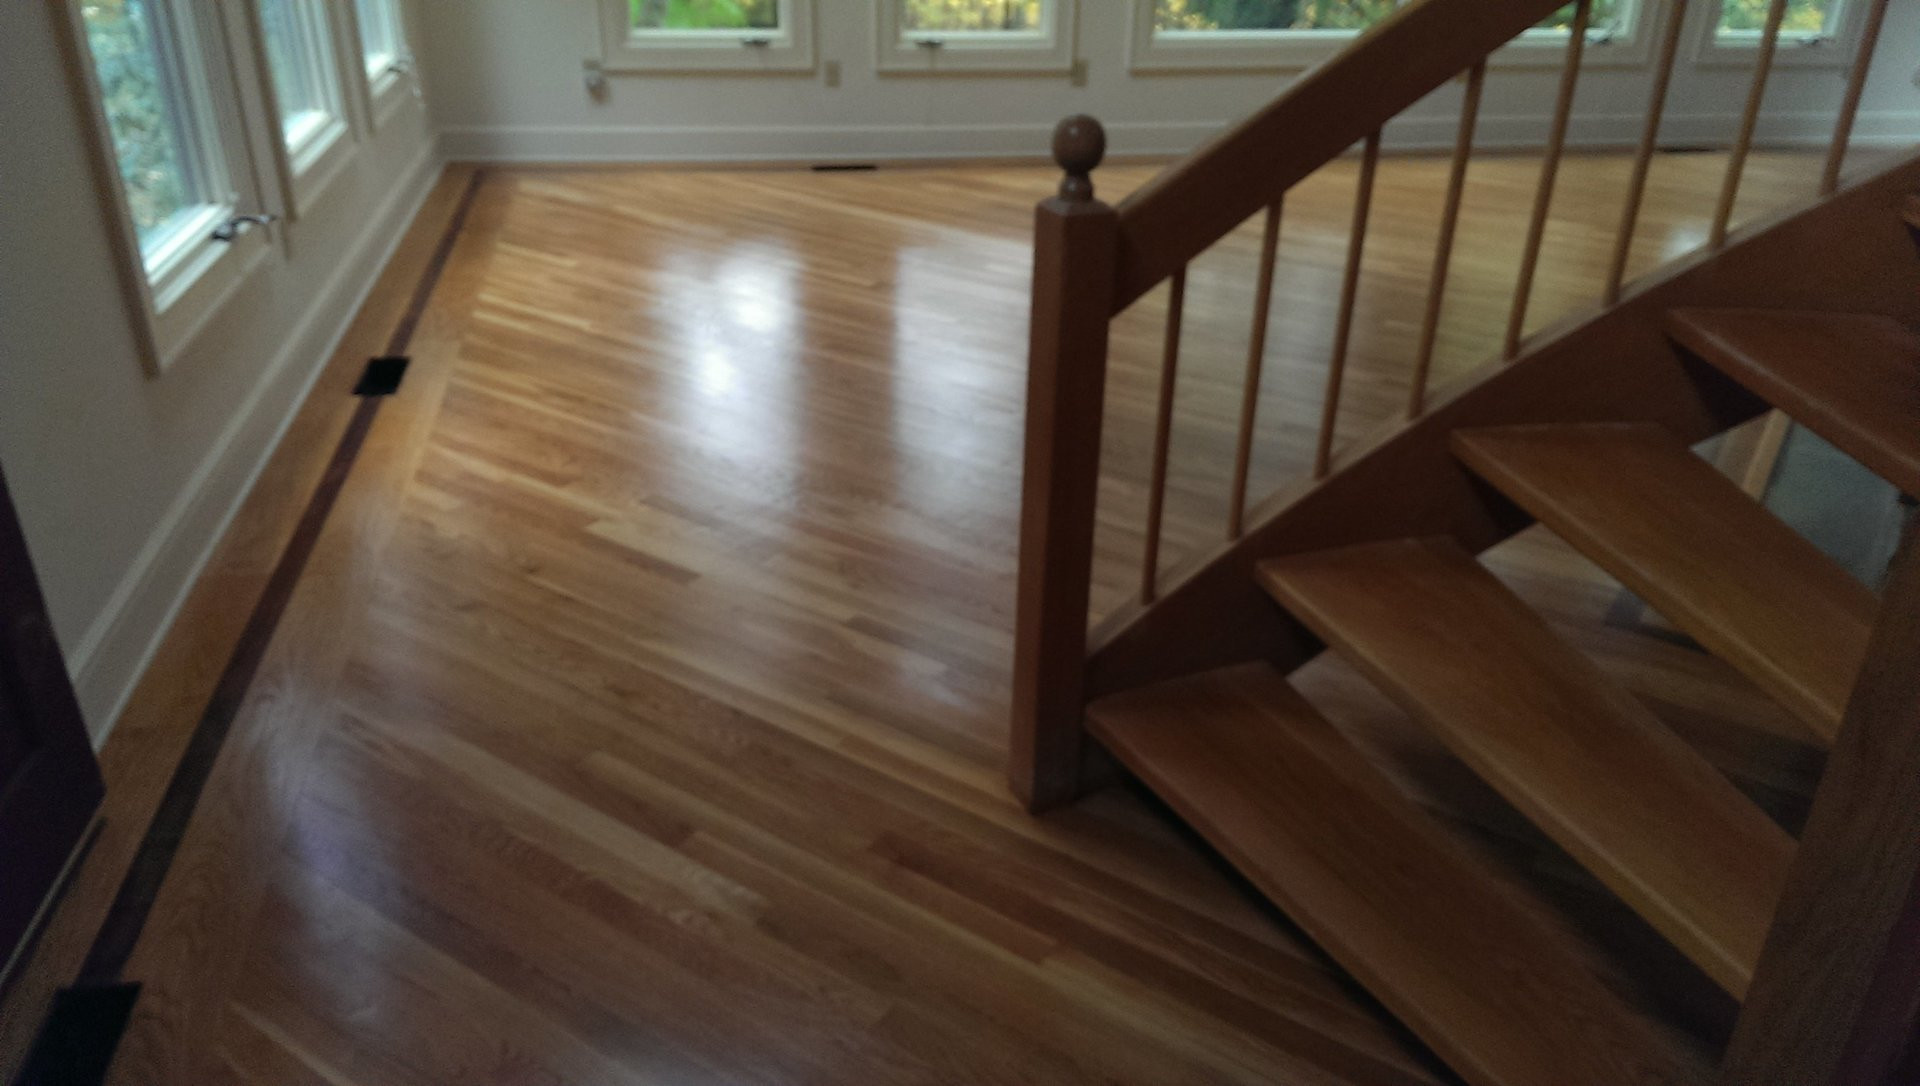 Hardwood Flooring Contractor Fairfield County Ct Of American Floor Service Staircase Gallery Fairfield Ct Pertaining to Check Out Our Wood Staircase Projects